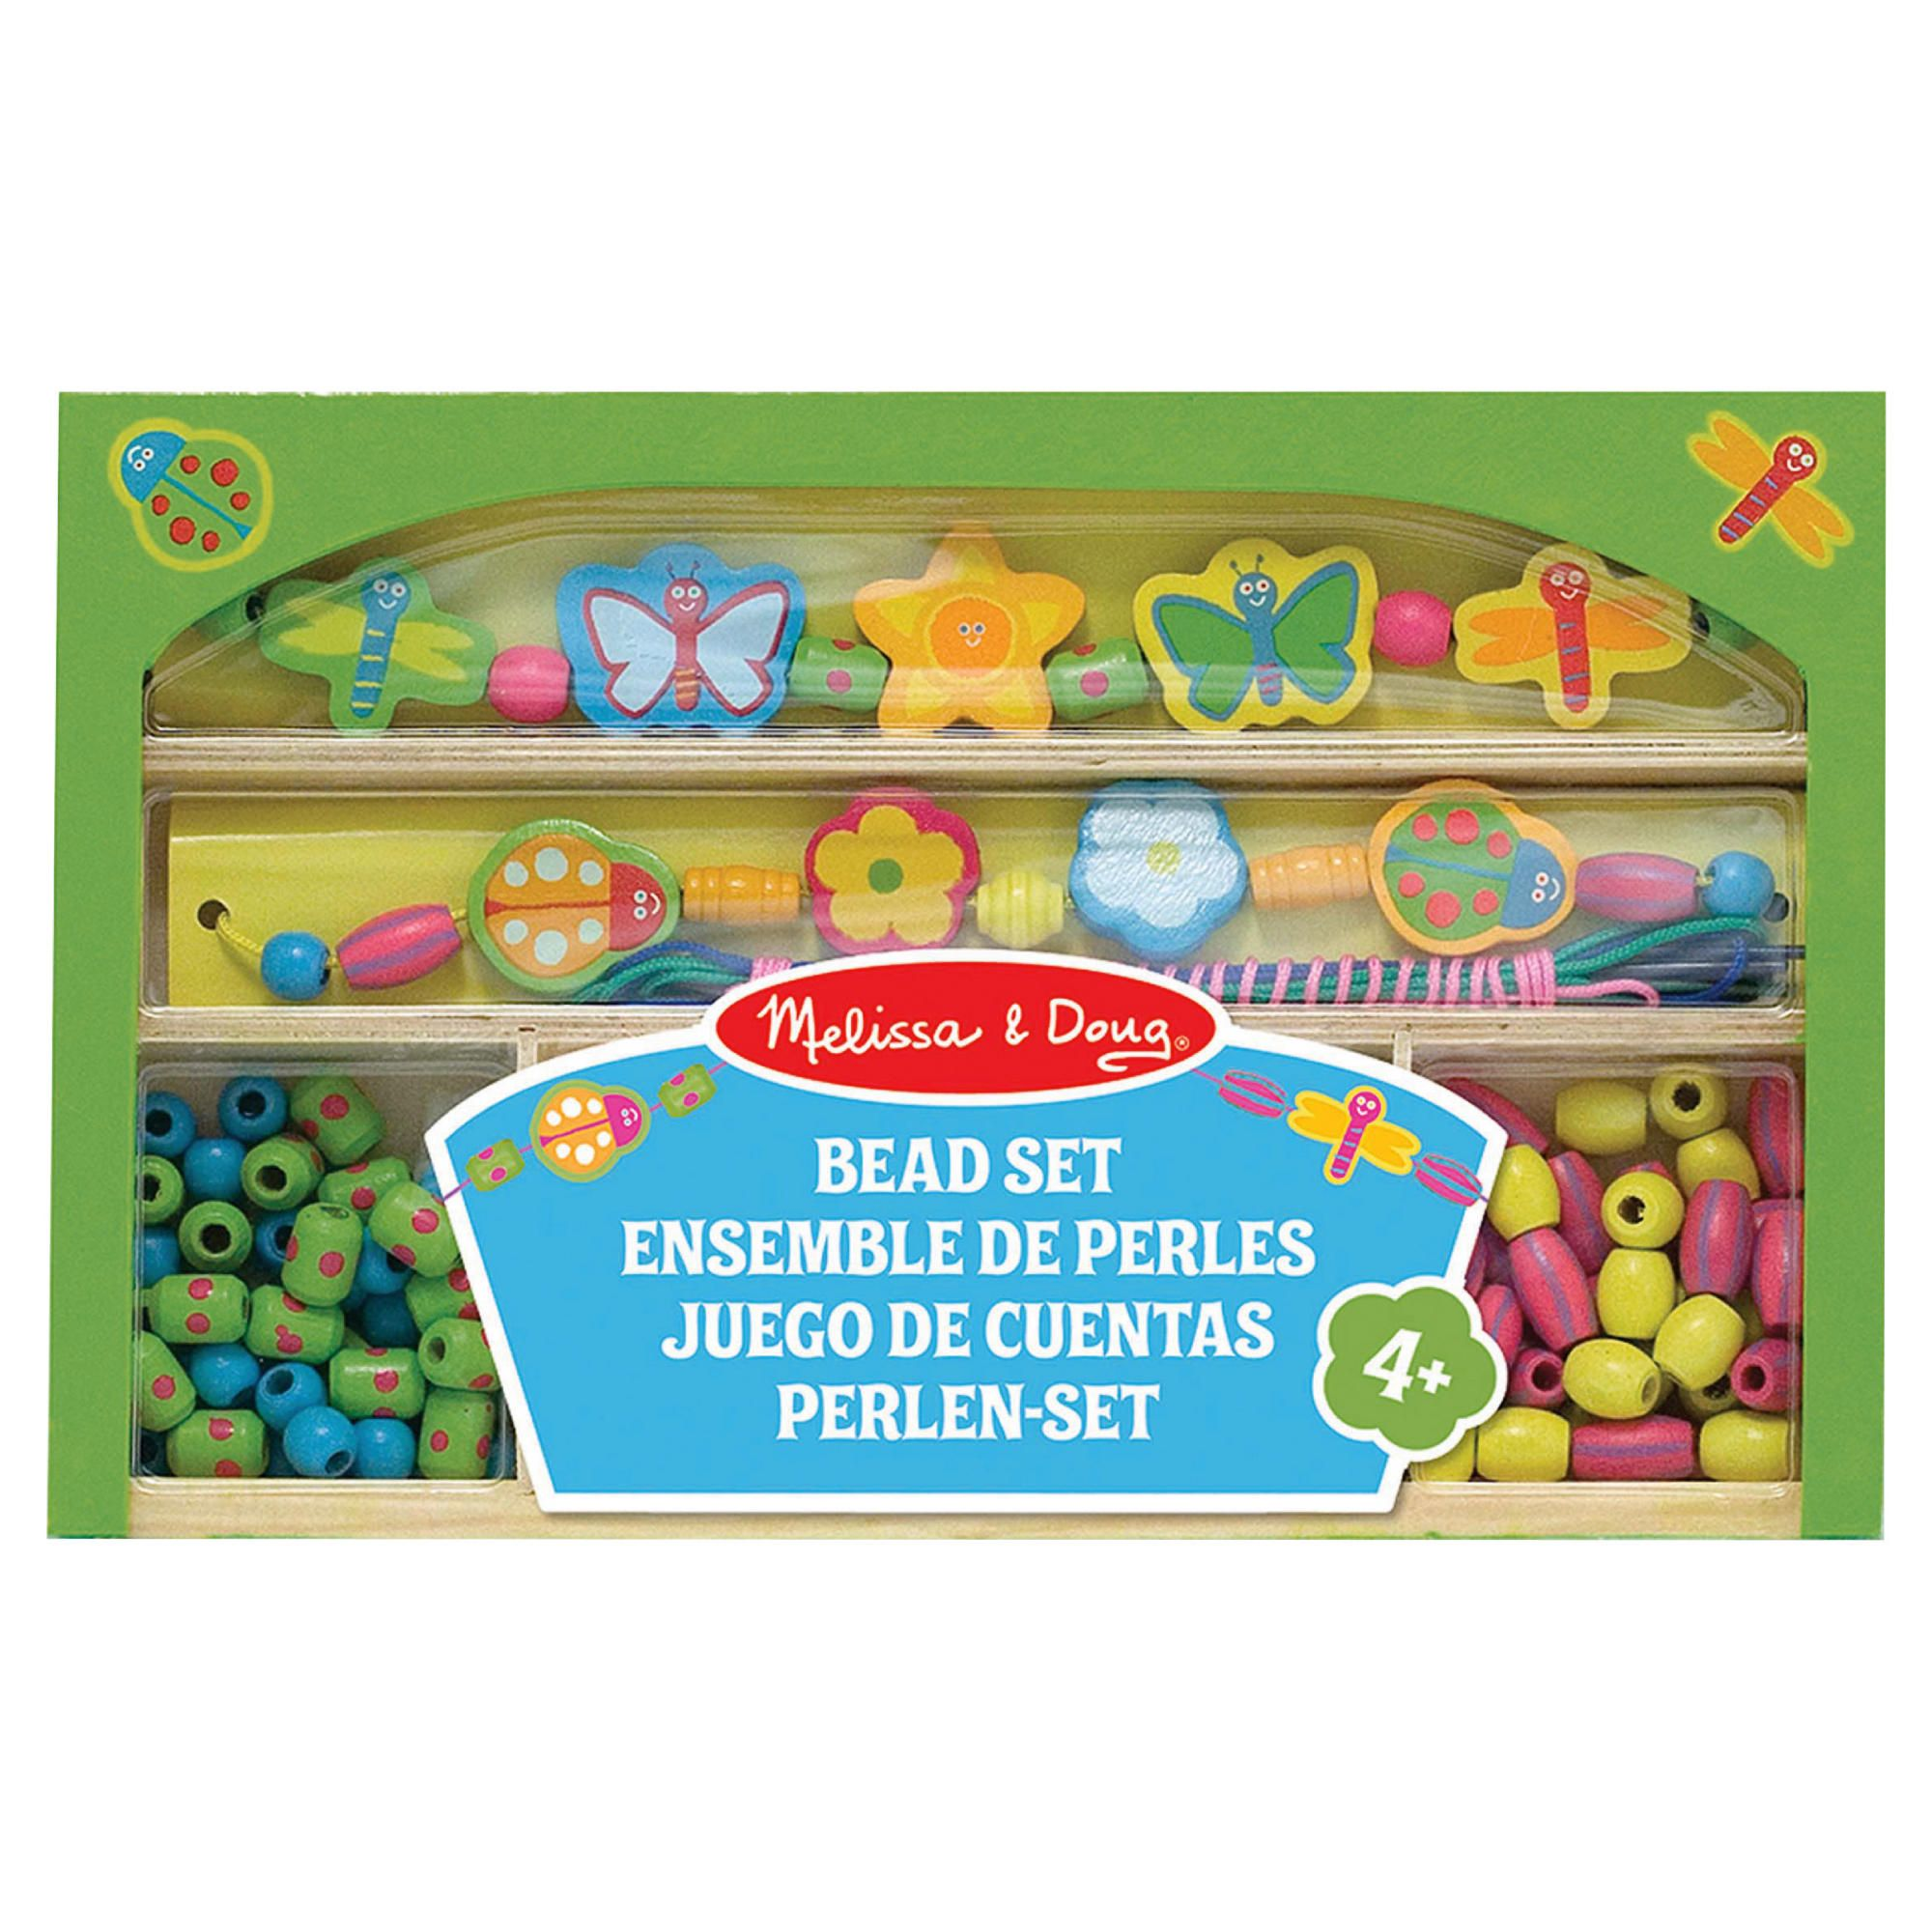 Games Consoles And Toys Whittle World Fire Rescue Play Set Melissa And Doug Special Offers